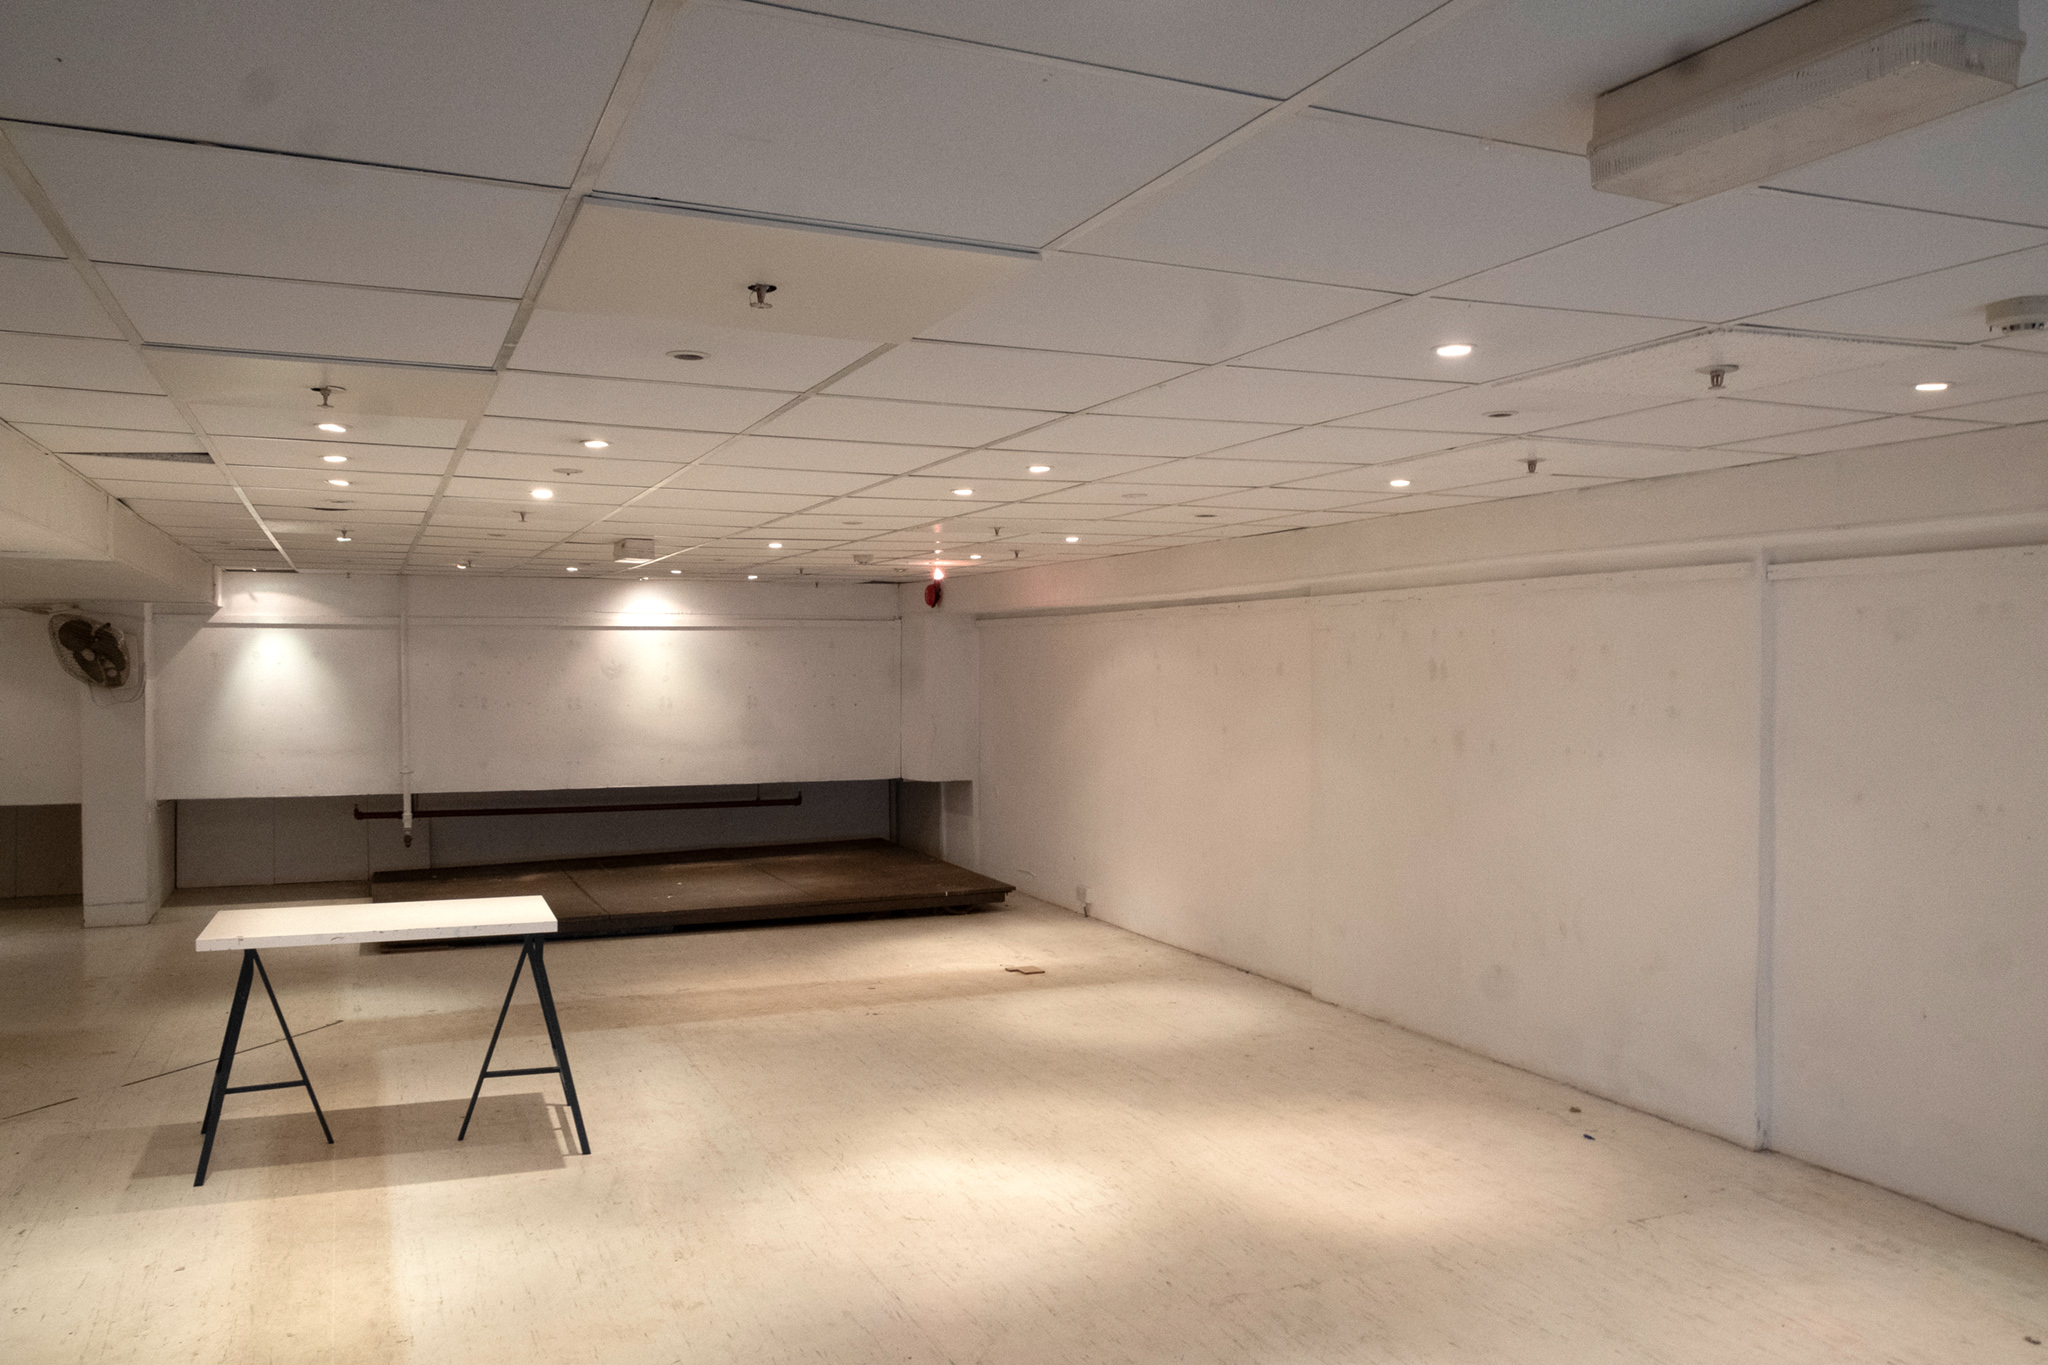 'The Loft', one of the largest exhibition spaces currently available in Croydon